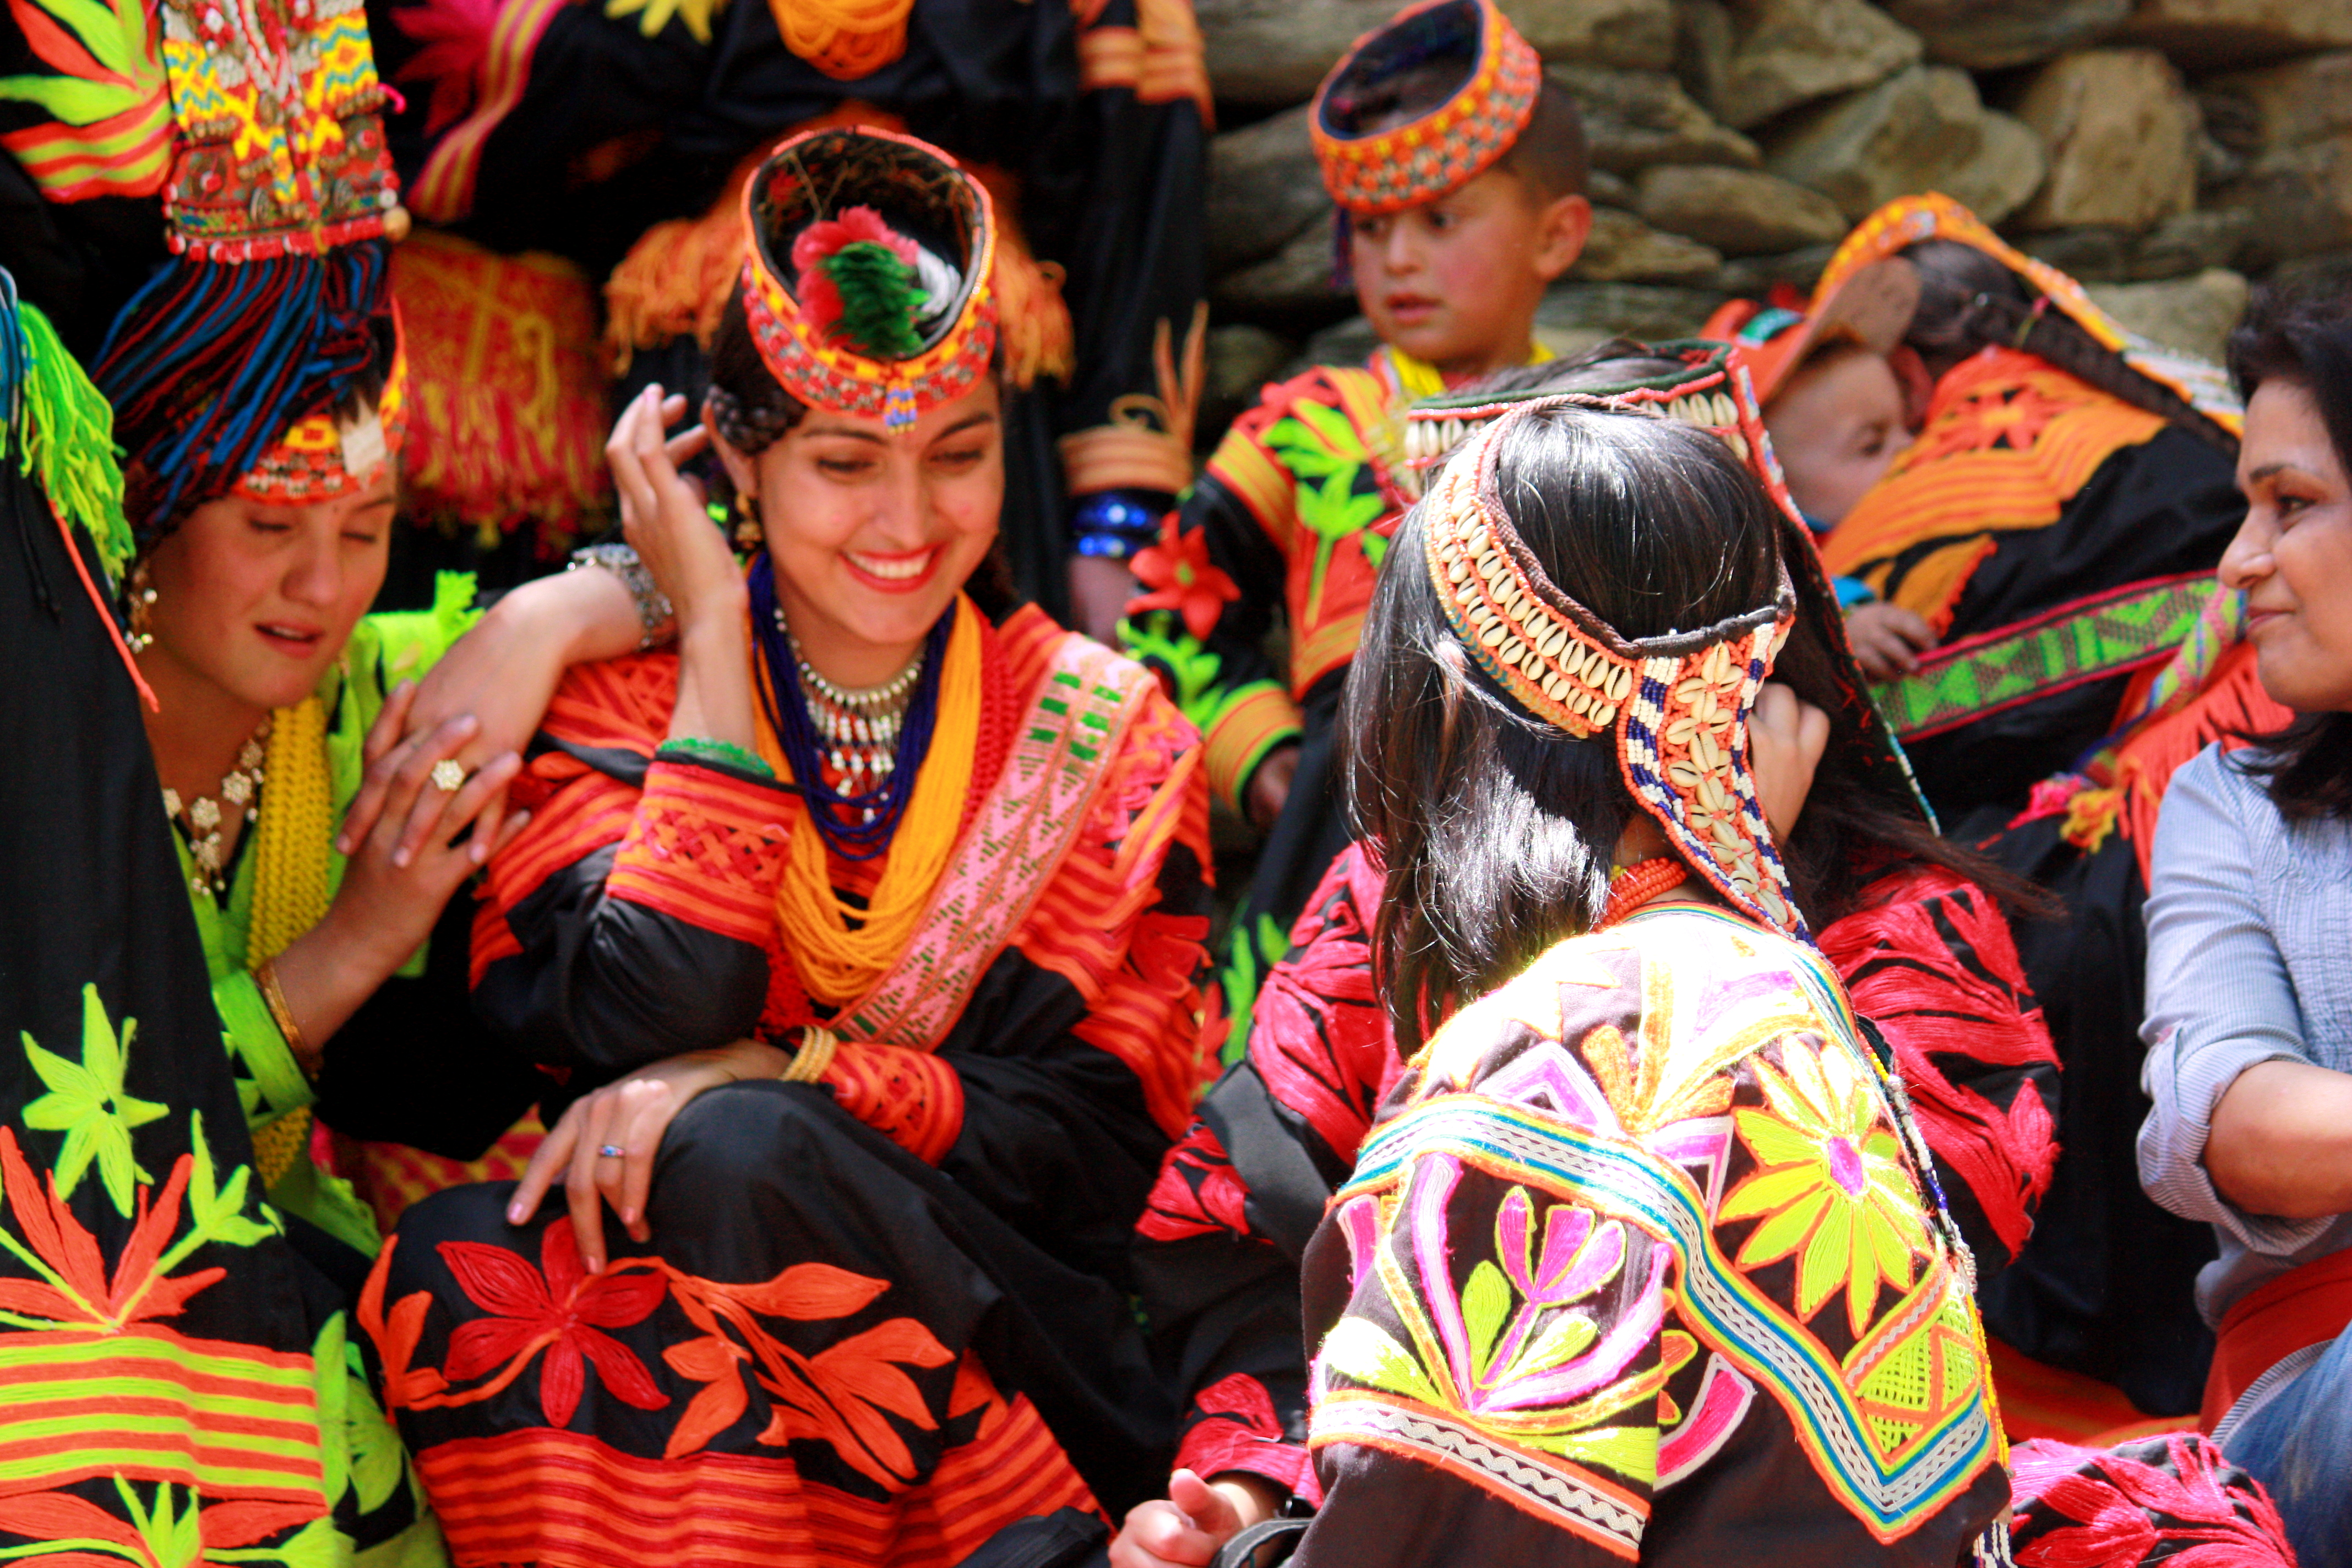 Kalash_women_traditional_clothing